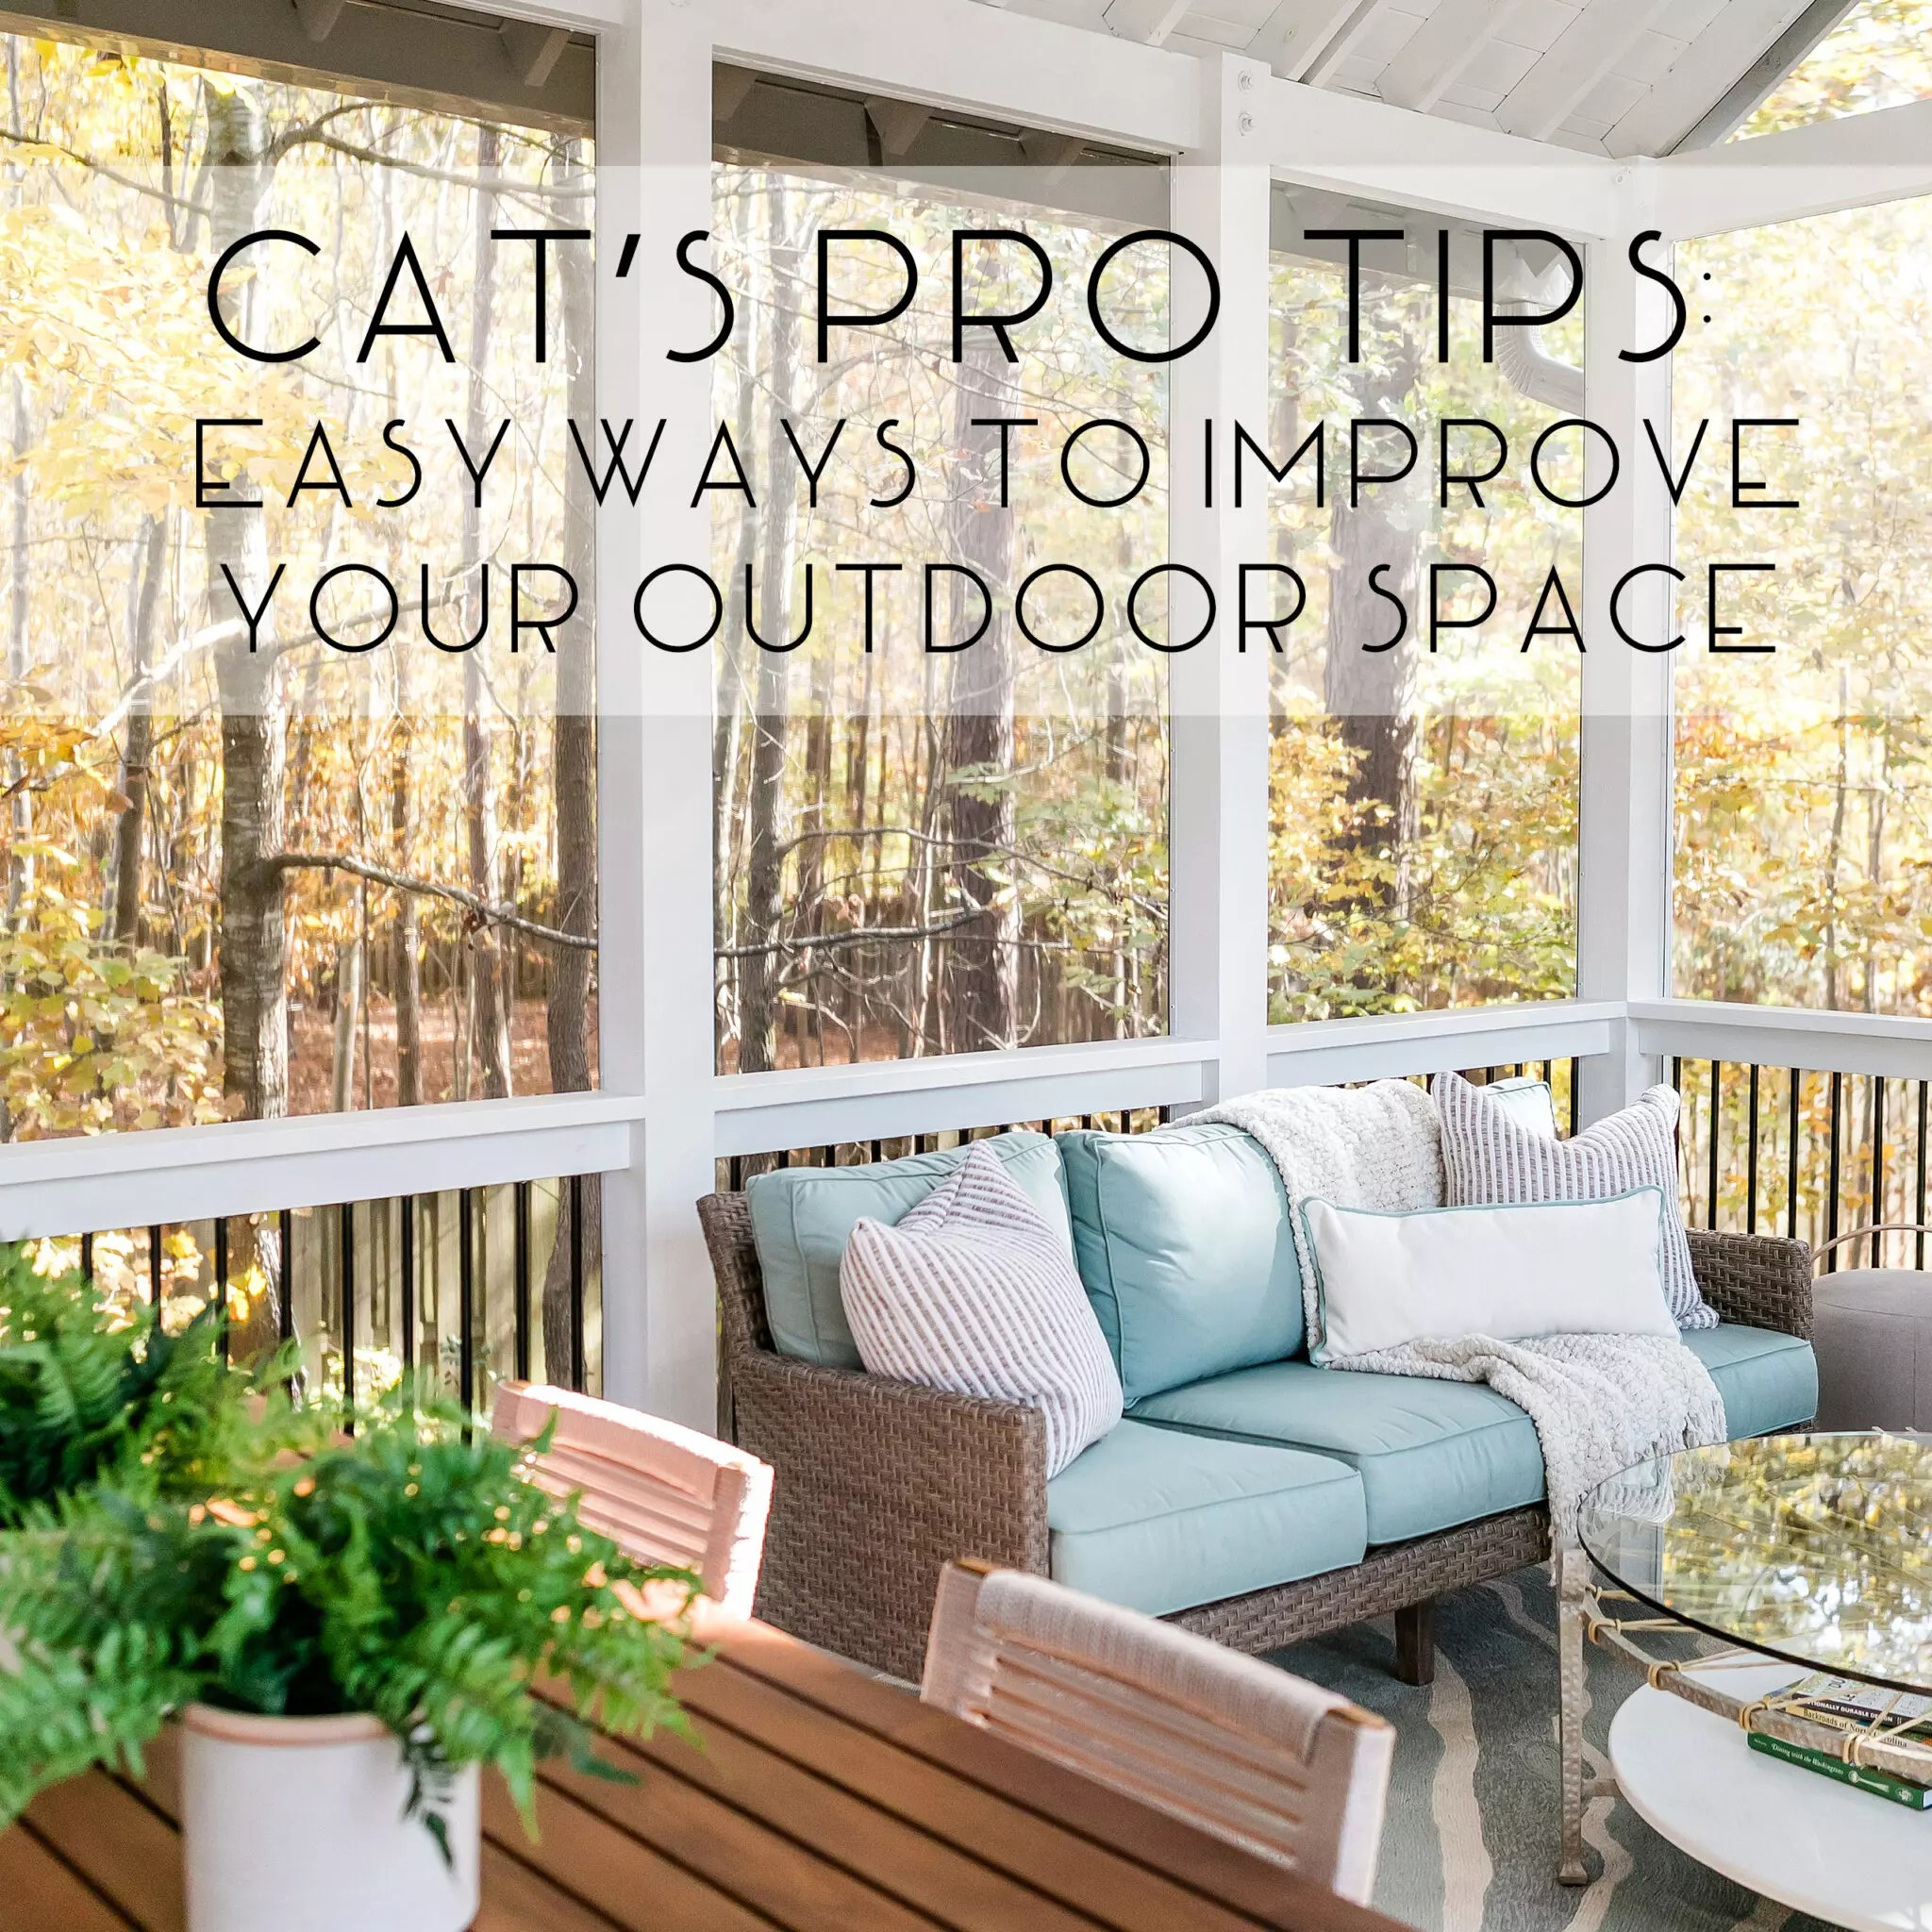 Easy Ways to Improve Your Outdoor Space - Cat French Design